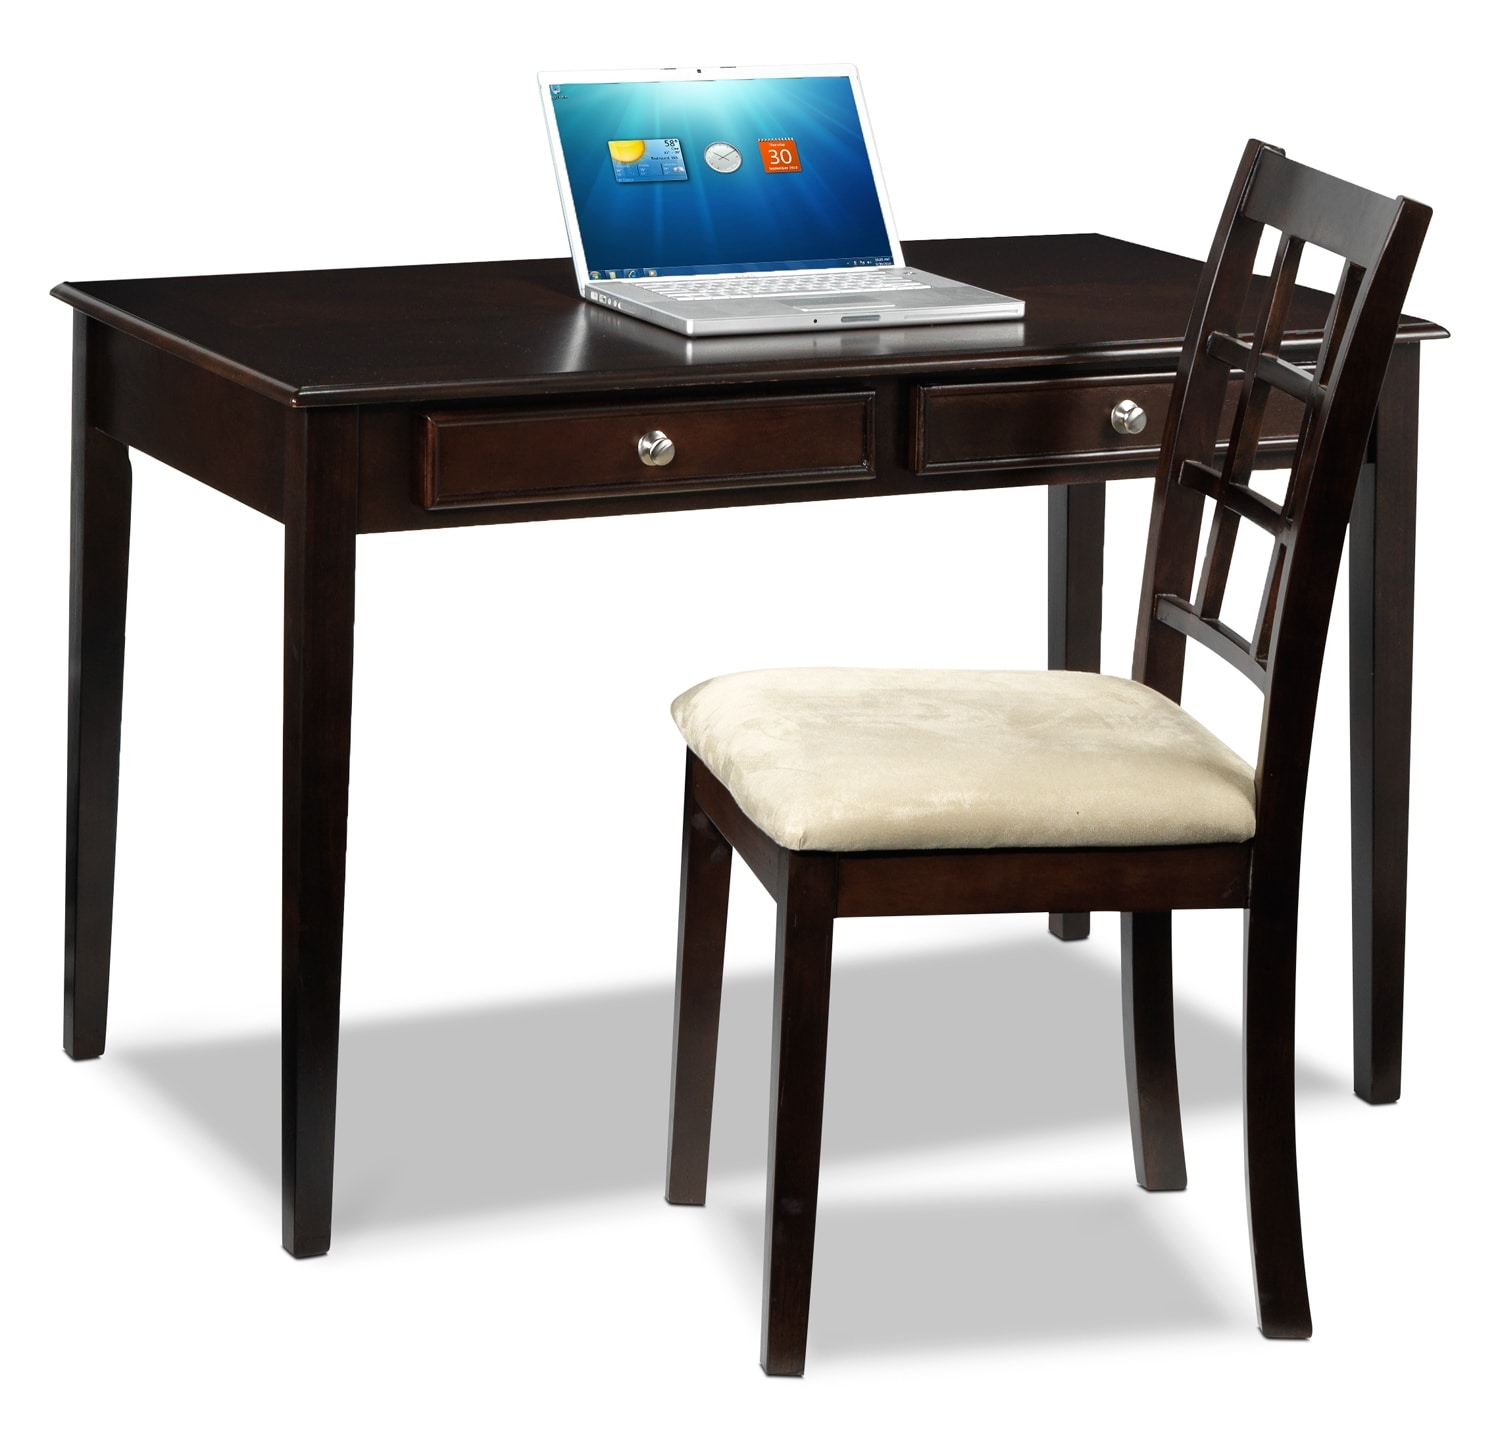 Tyndall Desk and Chair Package - Espresso